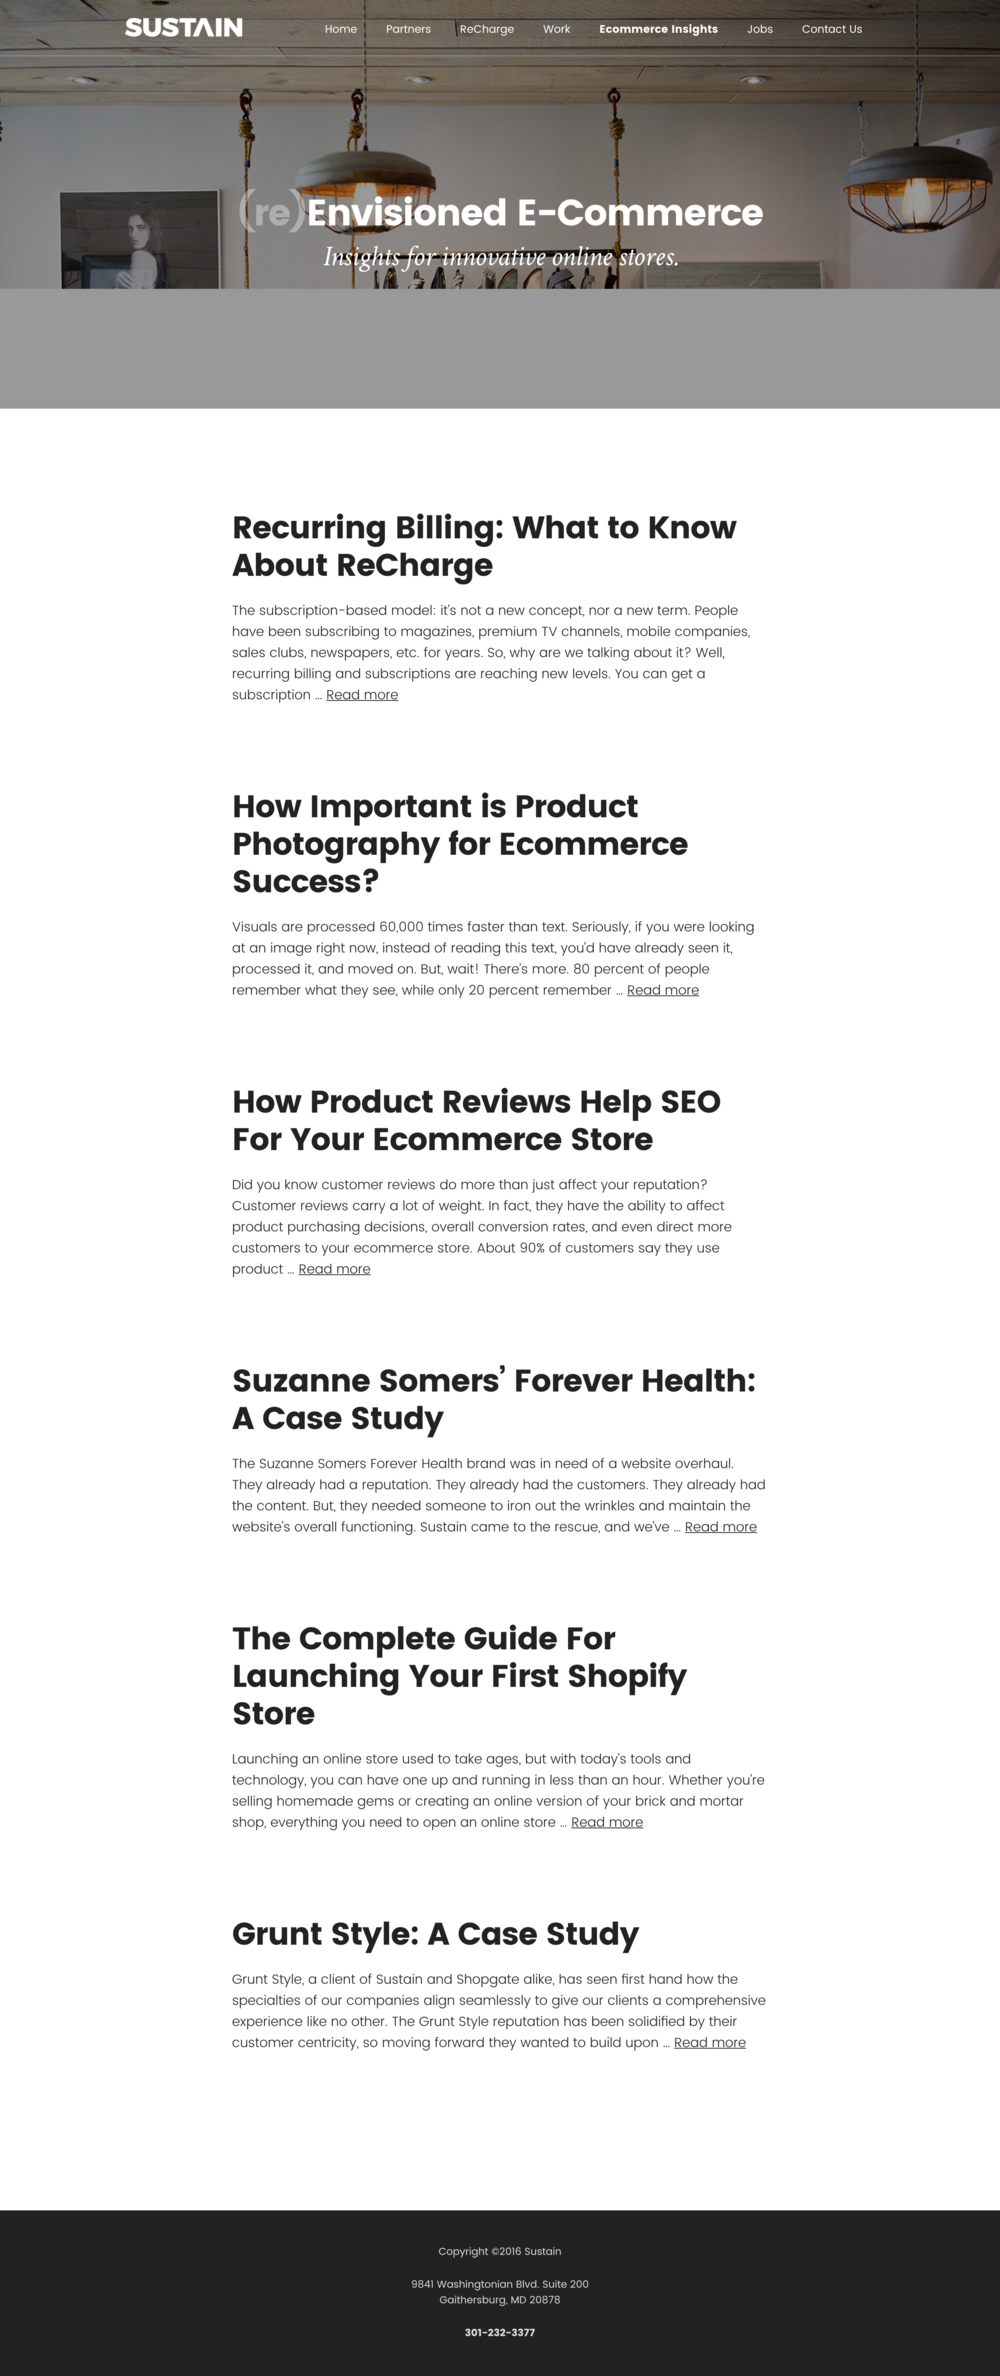 screencapture-sustain-agency-ecommerce-insights-1478190637586.png